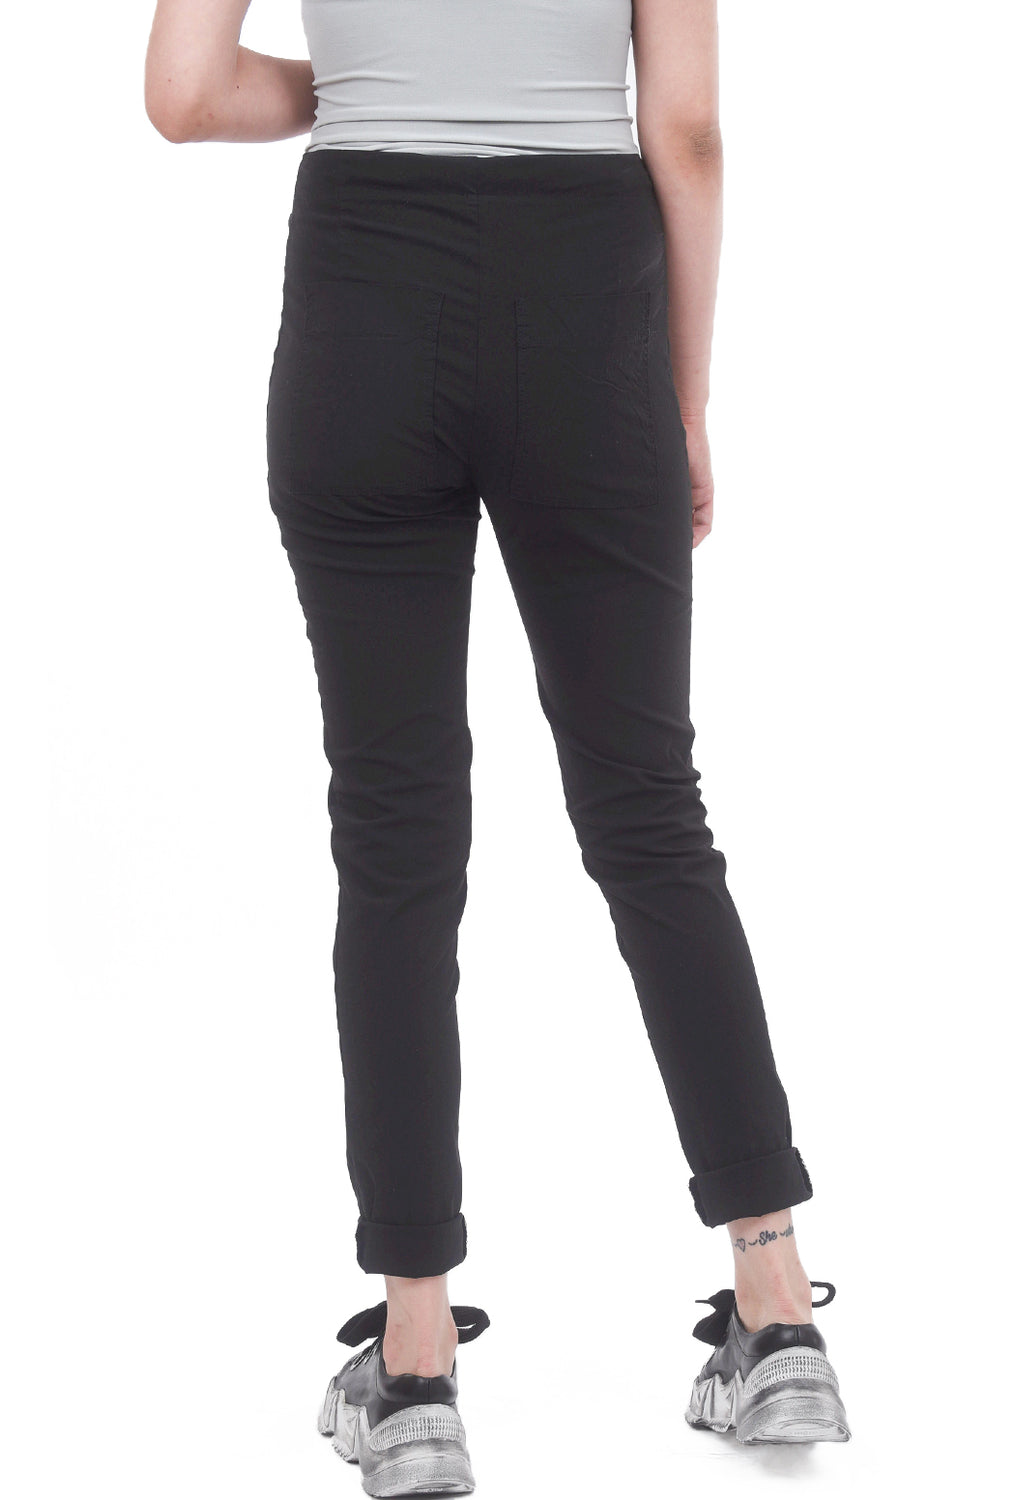 Rundholz Black Label Stretch Twill Pocket Skinnies, Black